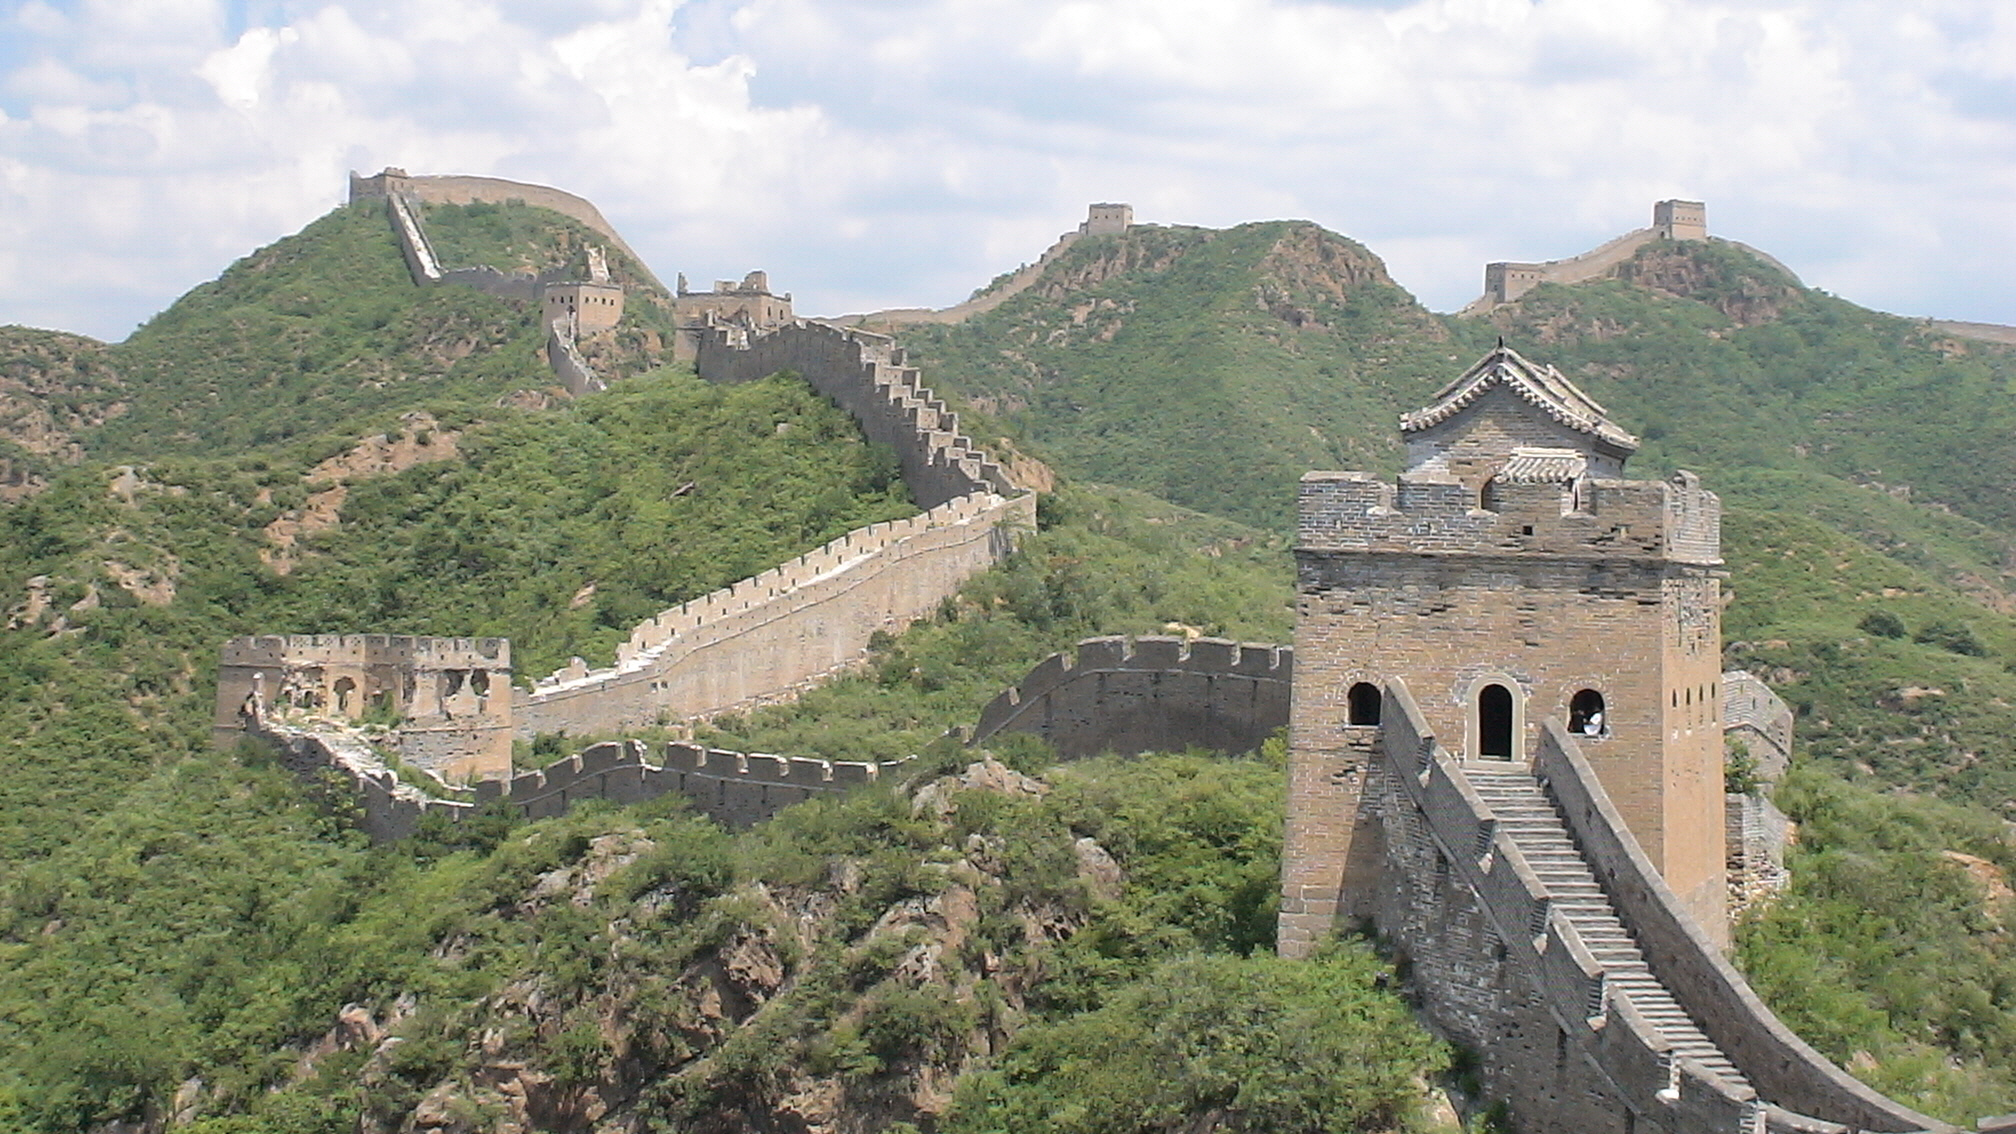 Beijing. Great wall. Jinshanling section